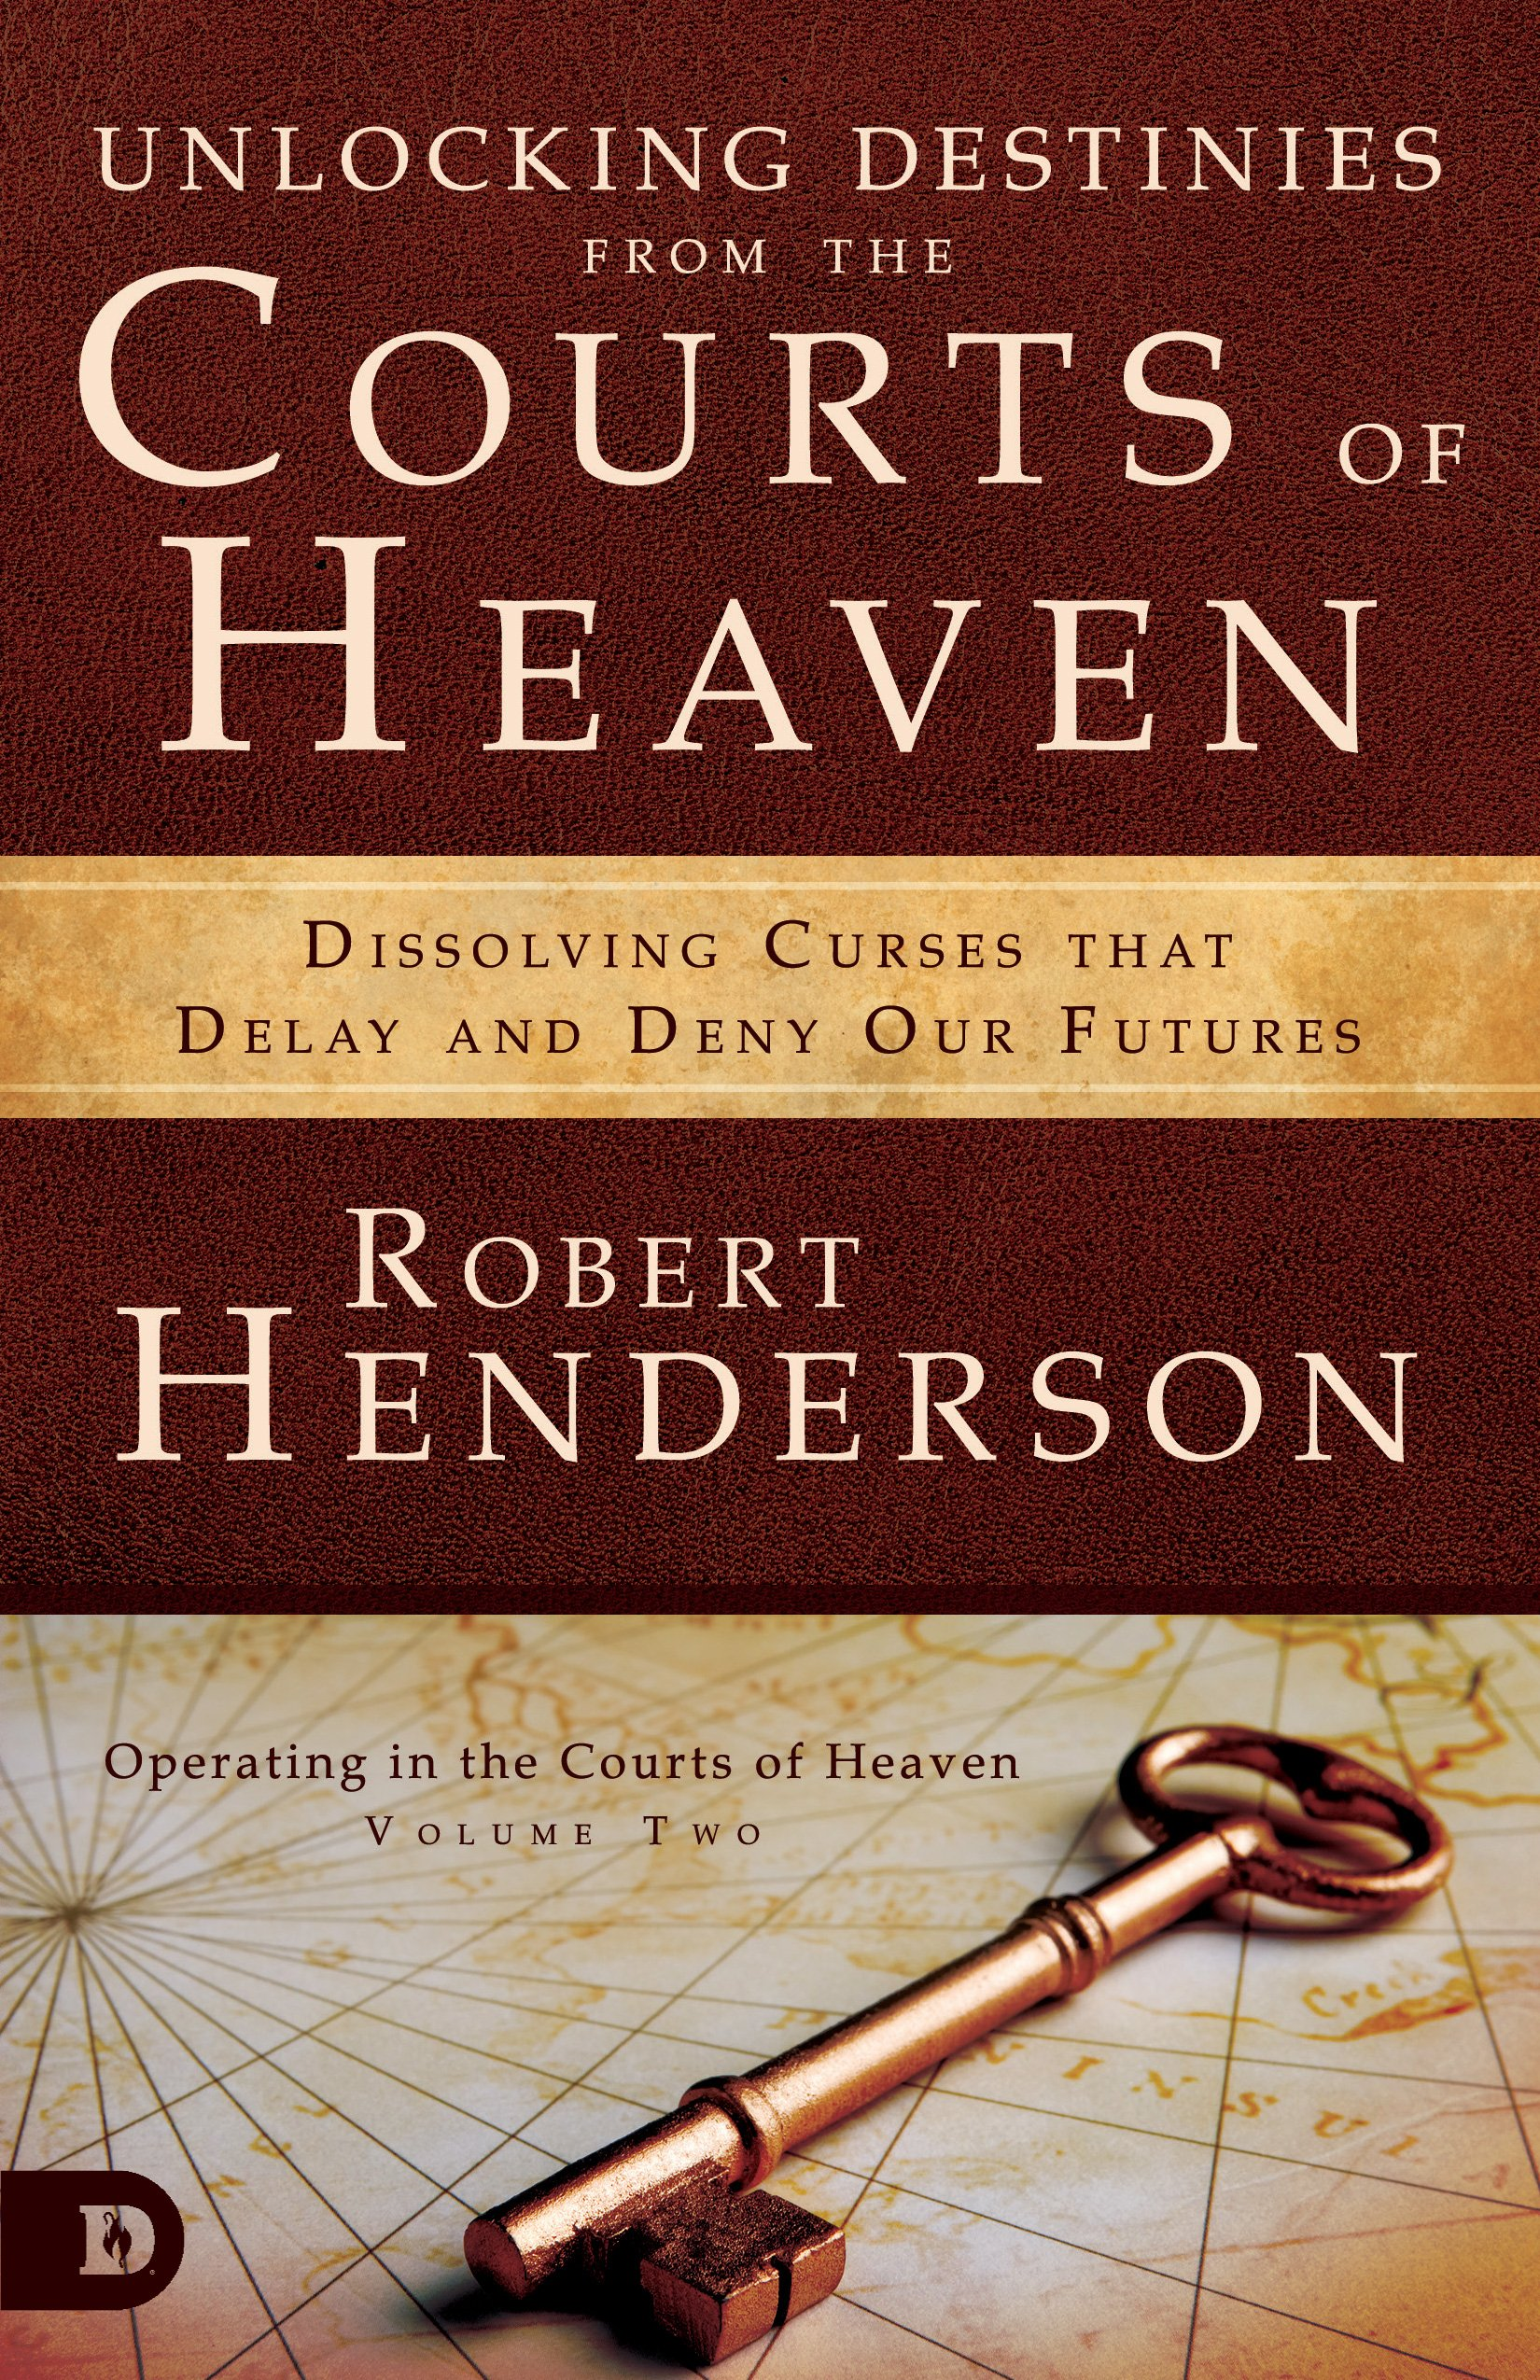 Courts of Heaven -The Spirit Church